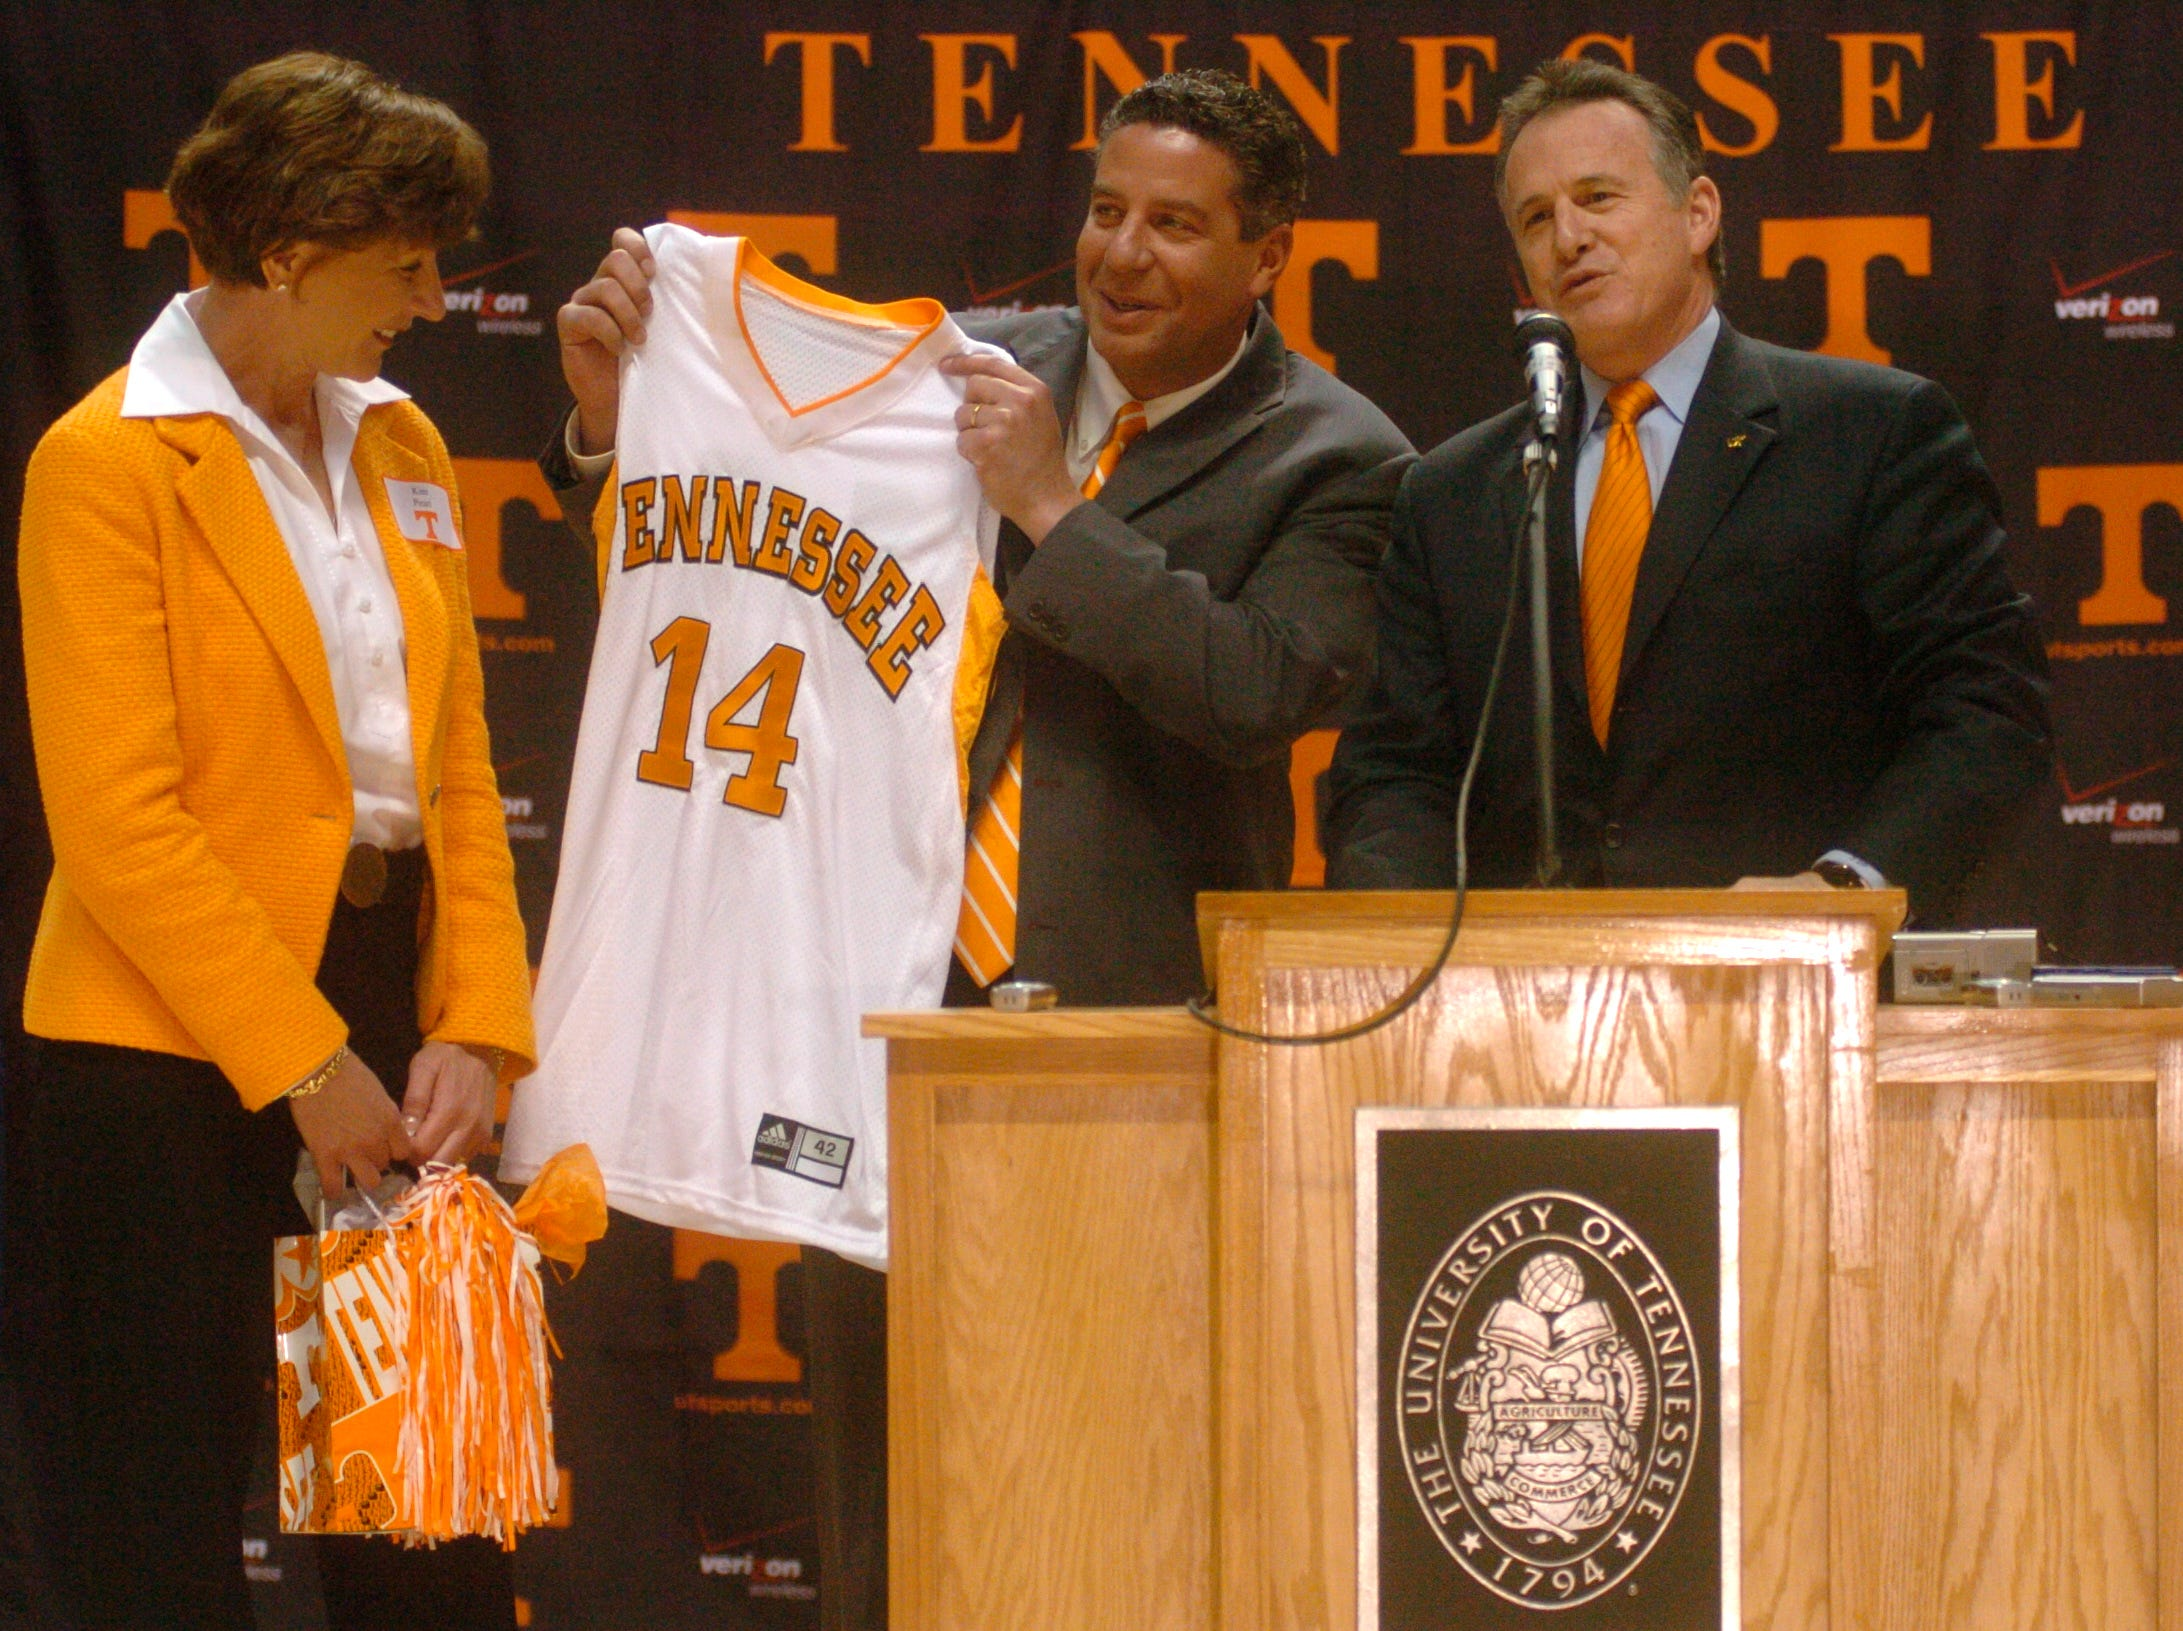 New Tennessee men's basketball coach Bruce Pearl and his wife Kim accept a Tennessee Jersey from UT President John Petersen while he is introduced during a press conference to name him as the new coach at Thompson-Boling Arena Monday afternoon. Pearl takes over at UT after coaching at Winsonsin-Milwaukee.